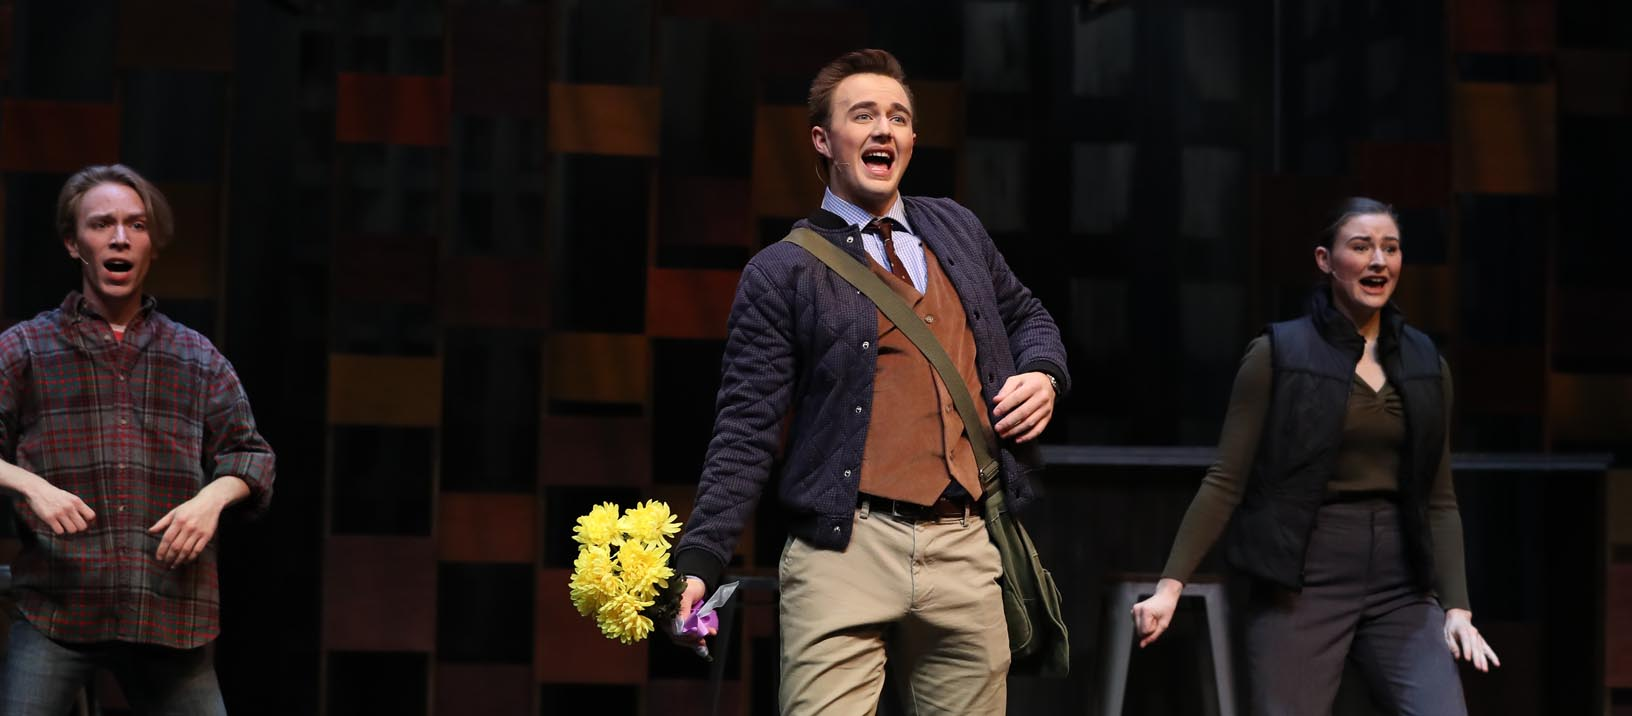 """University Theatre at Kearney will present """"I Love You Because"""" Wednesday through Sunday at UNK's Miriam Drake Theatre. (Photos by Corbey R. Dorsey, UNK Communications)"""